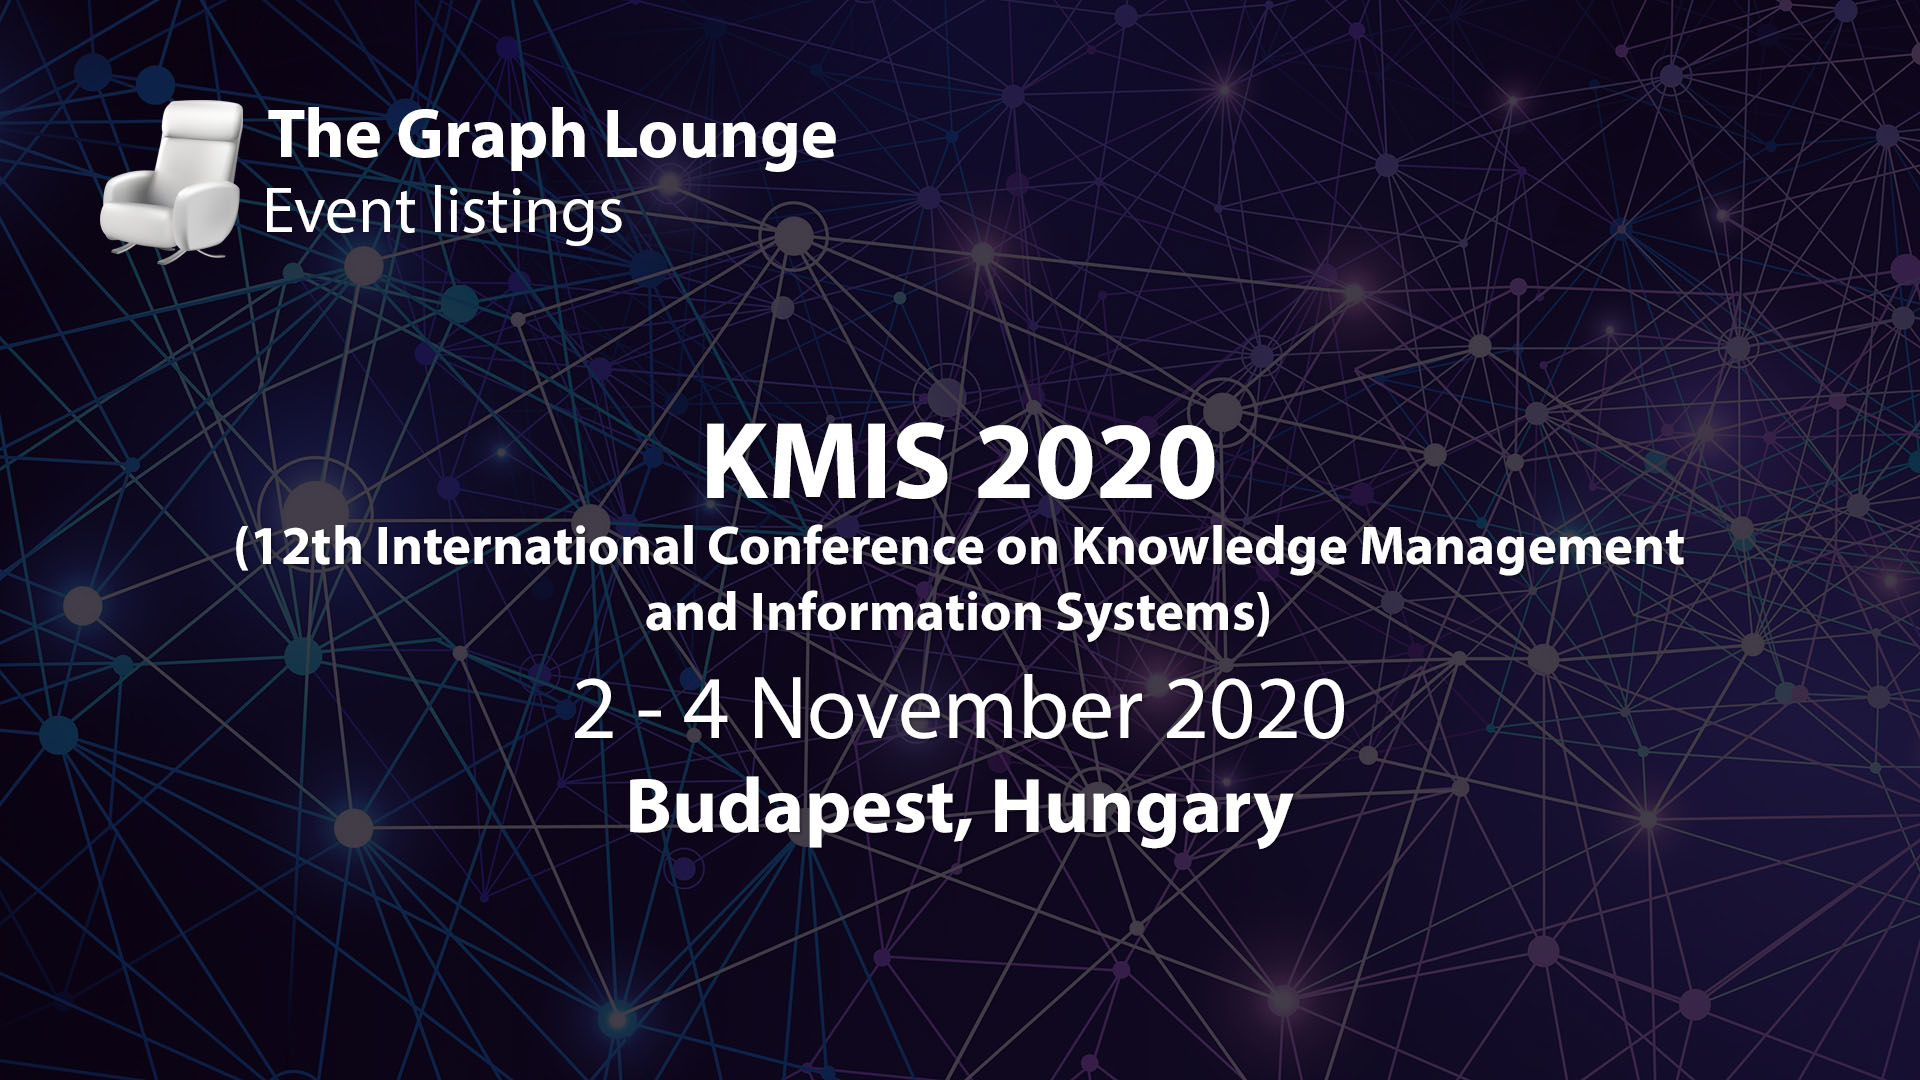 KIMS 2020 (12th International Conference on Knowledge Management and Information Systems)